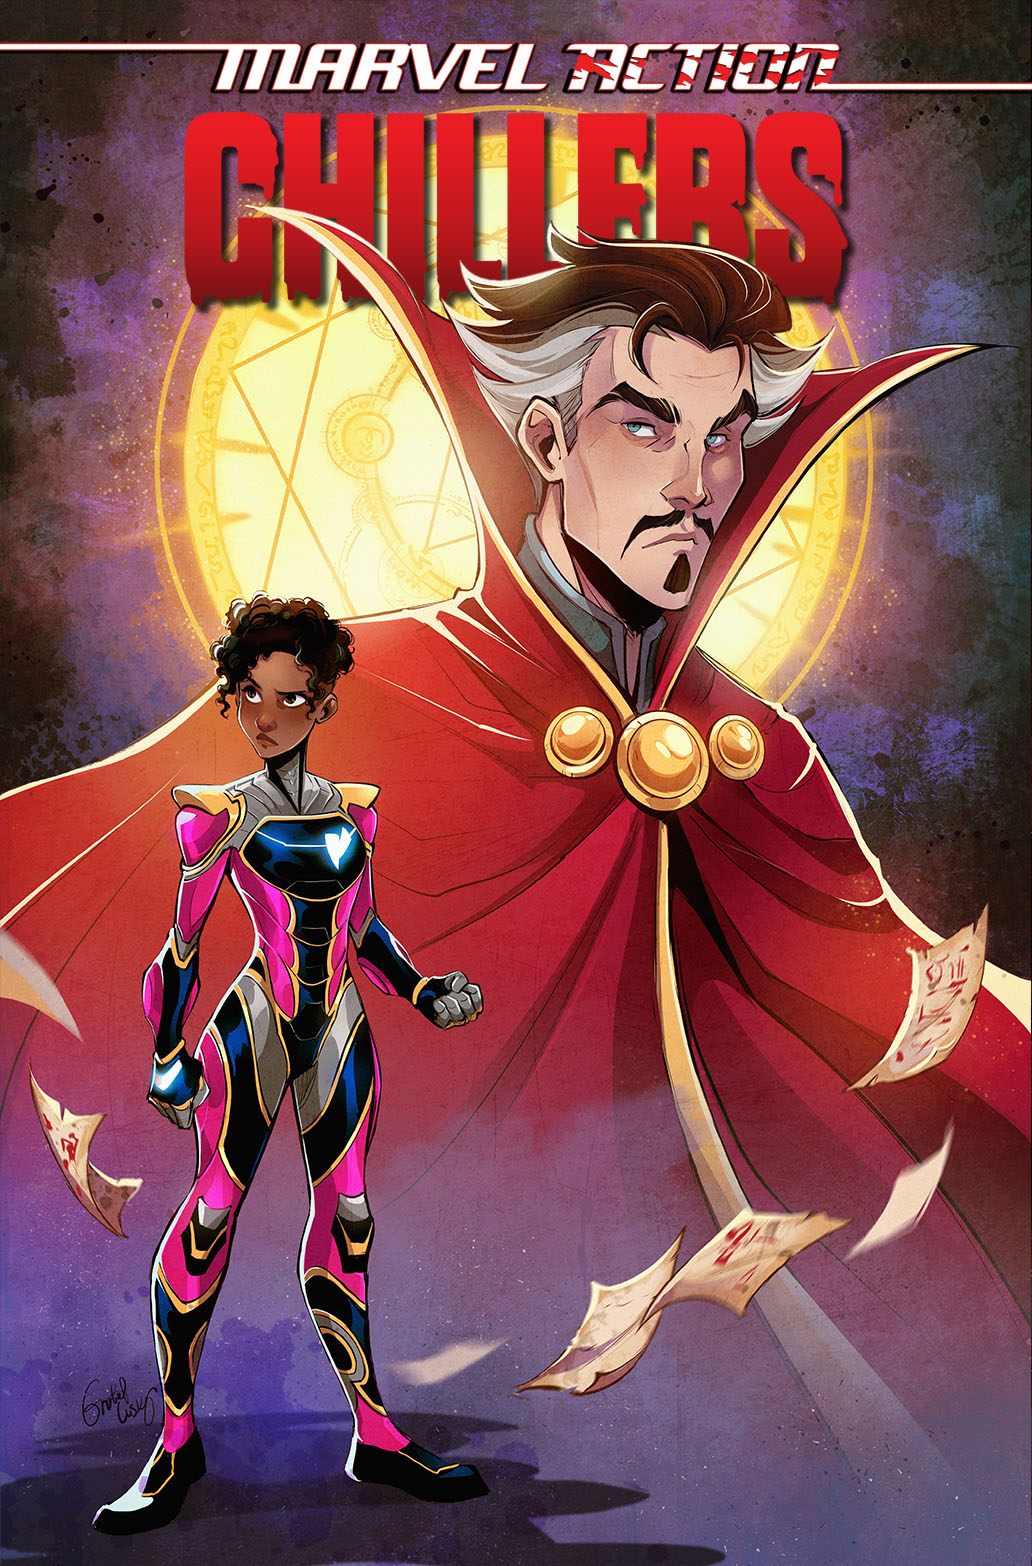 MarvelAction_CHILLERS_TPB_Cvr1-copy IDW Publishing July 2021 Solicitations